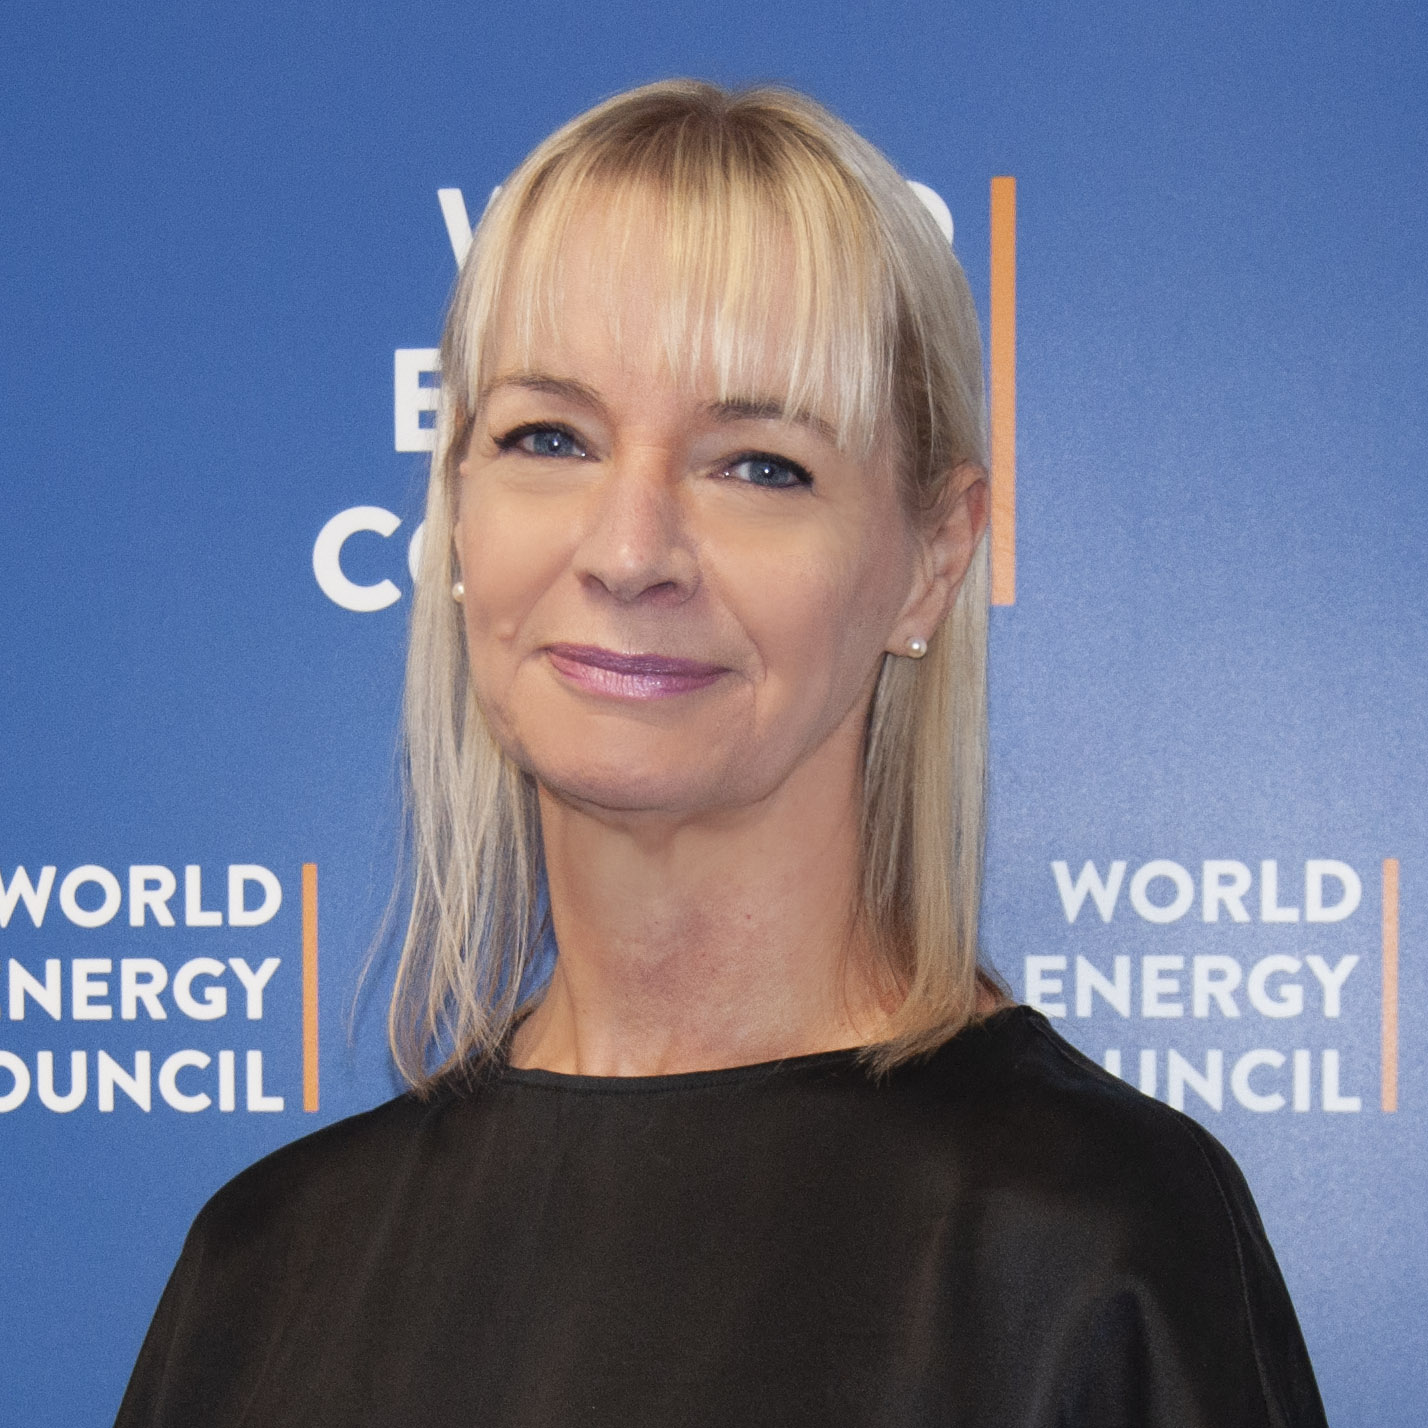 Dr Angela Wilkinson – Secretary General and CEO, World Energy Council